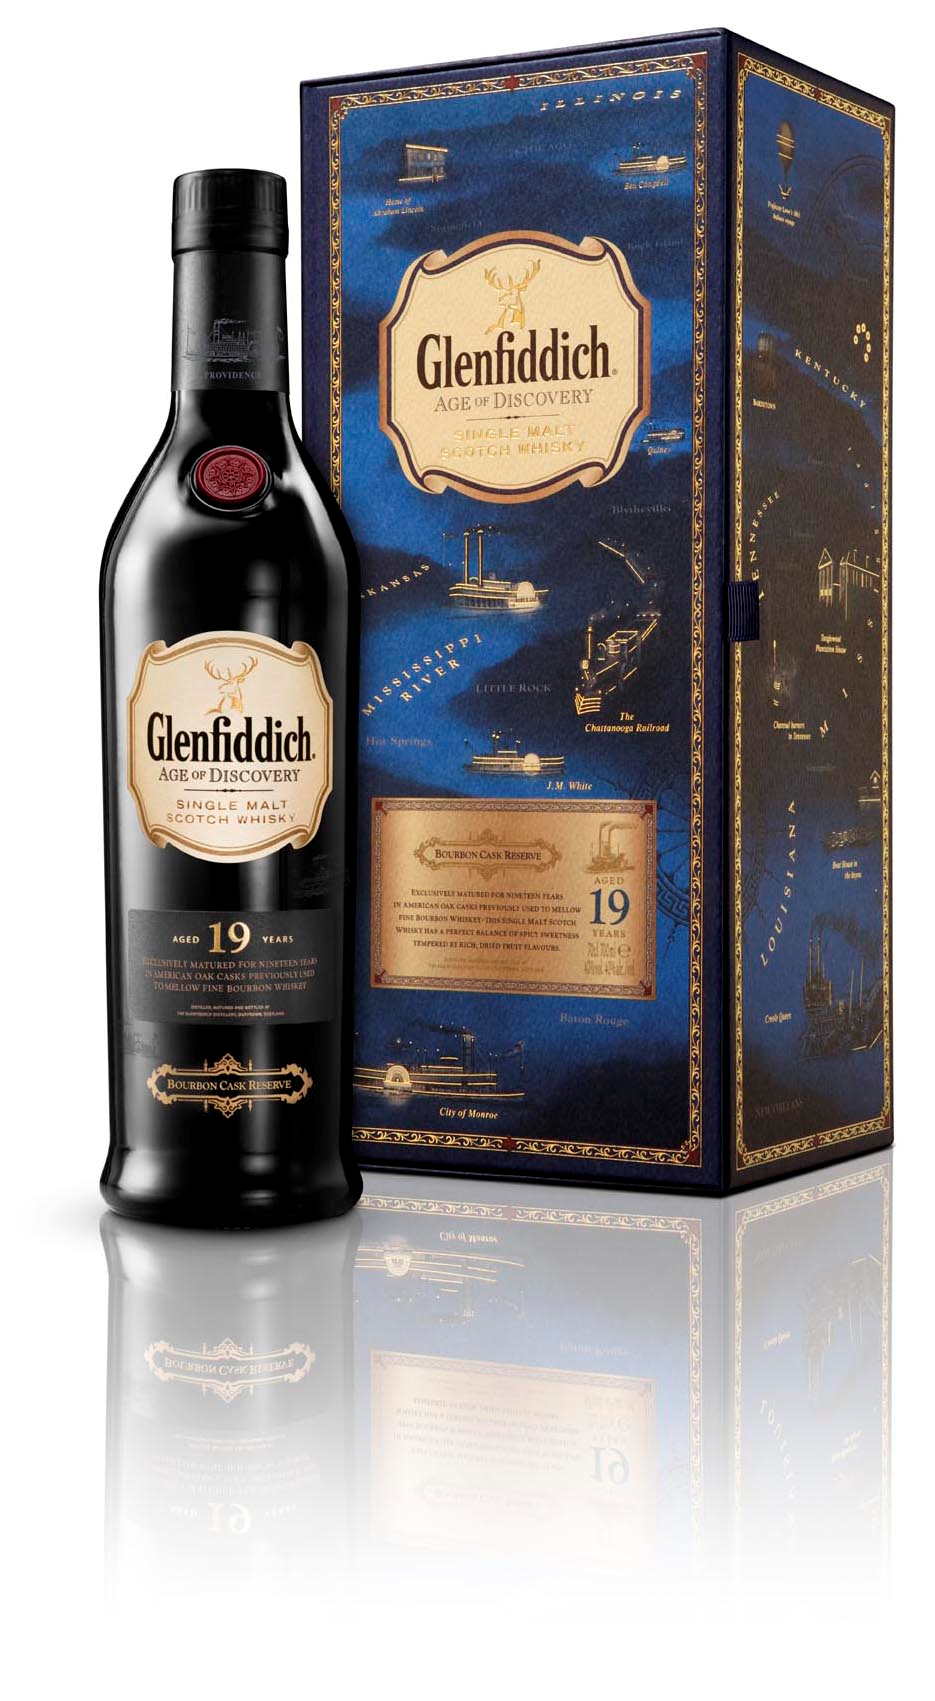 Glenfiddich Age of Discovery Bourbon Cask 19 Years Old